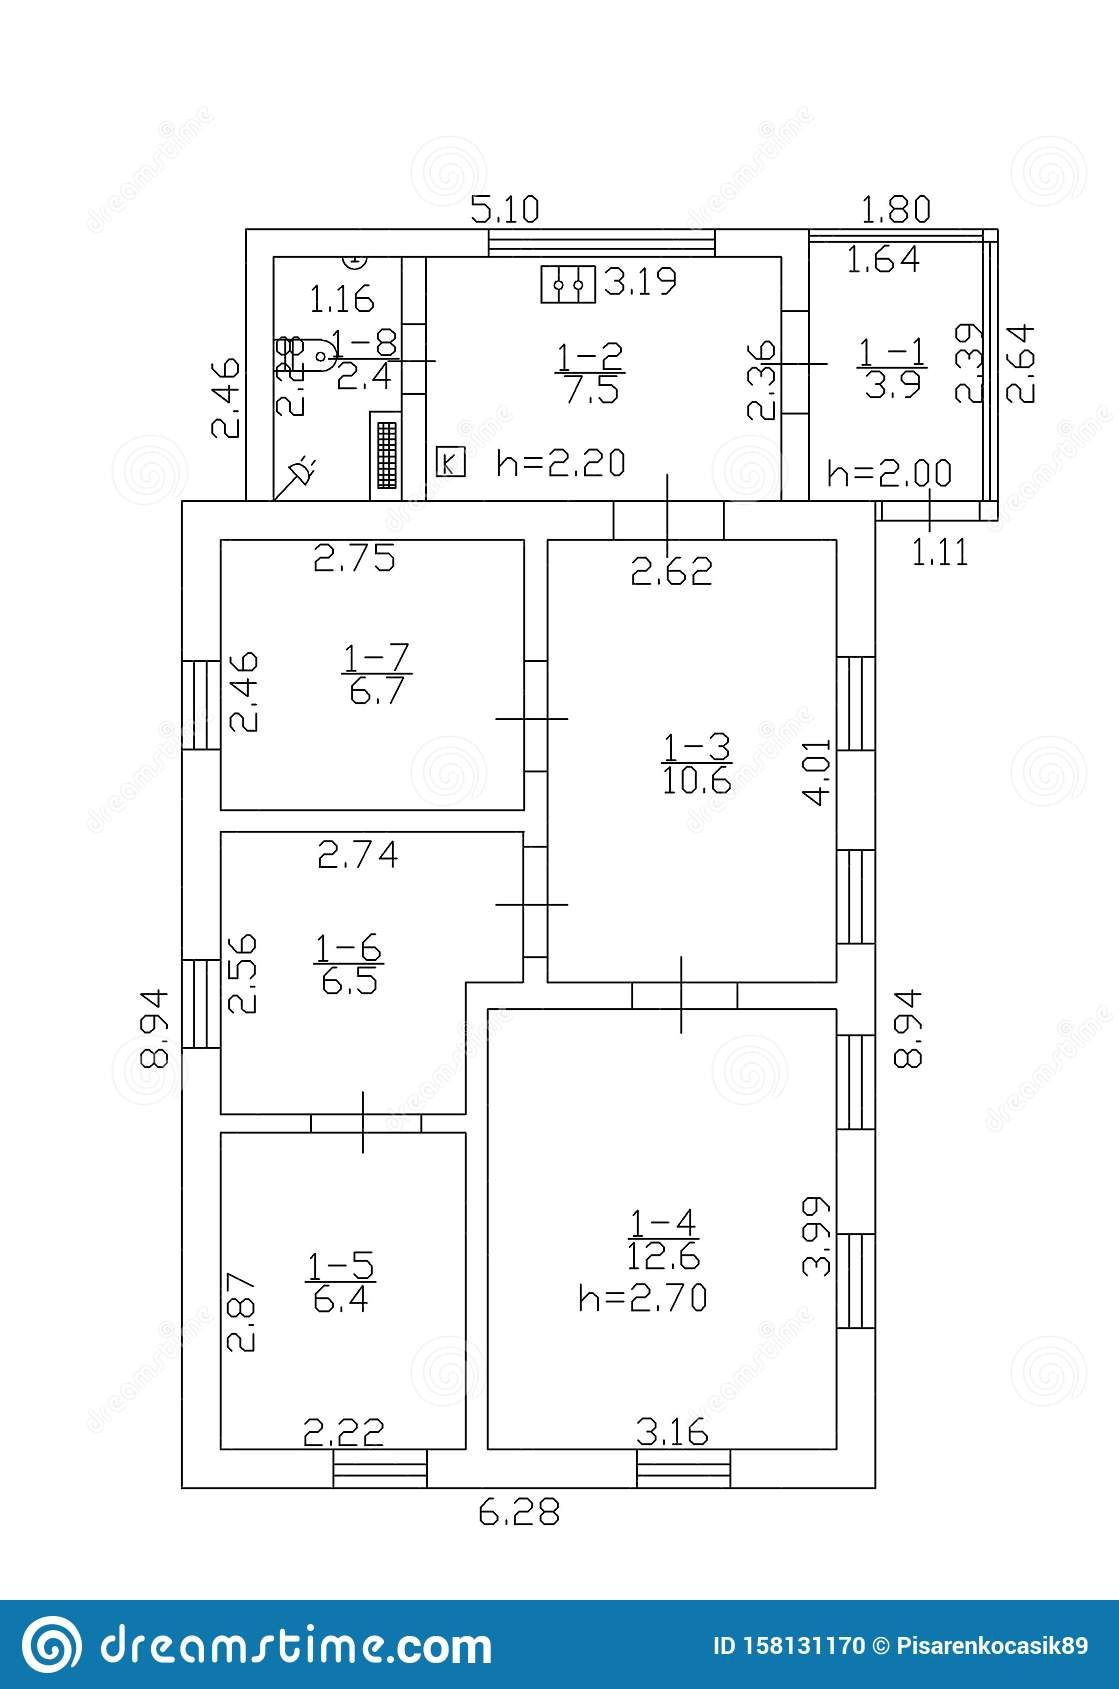 Floorplan Illustration Floor Plan Autocad Stock House Plans Free House Design How To Plan